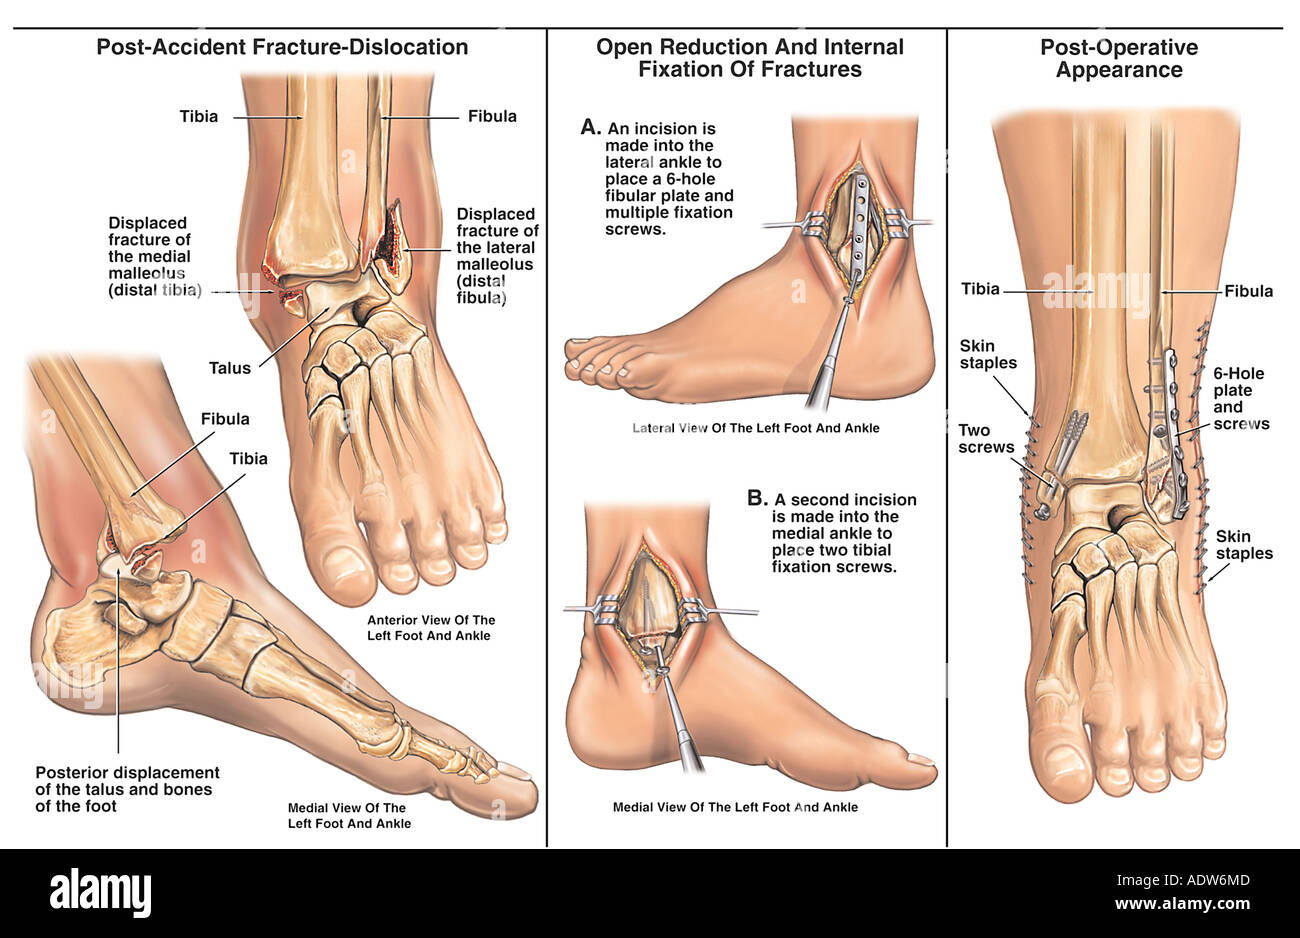 Bimalleolar Left Ankle Fracture Dislocation with Surgical Fixation - Stock Image